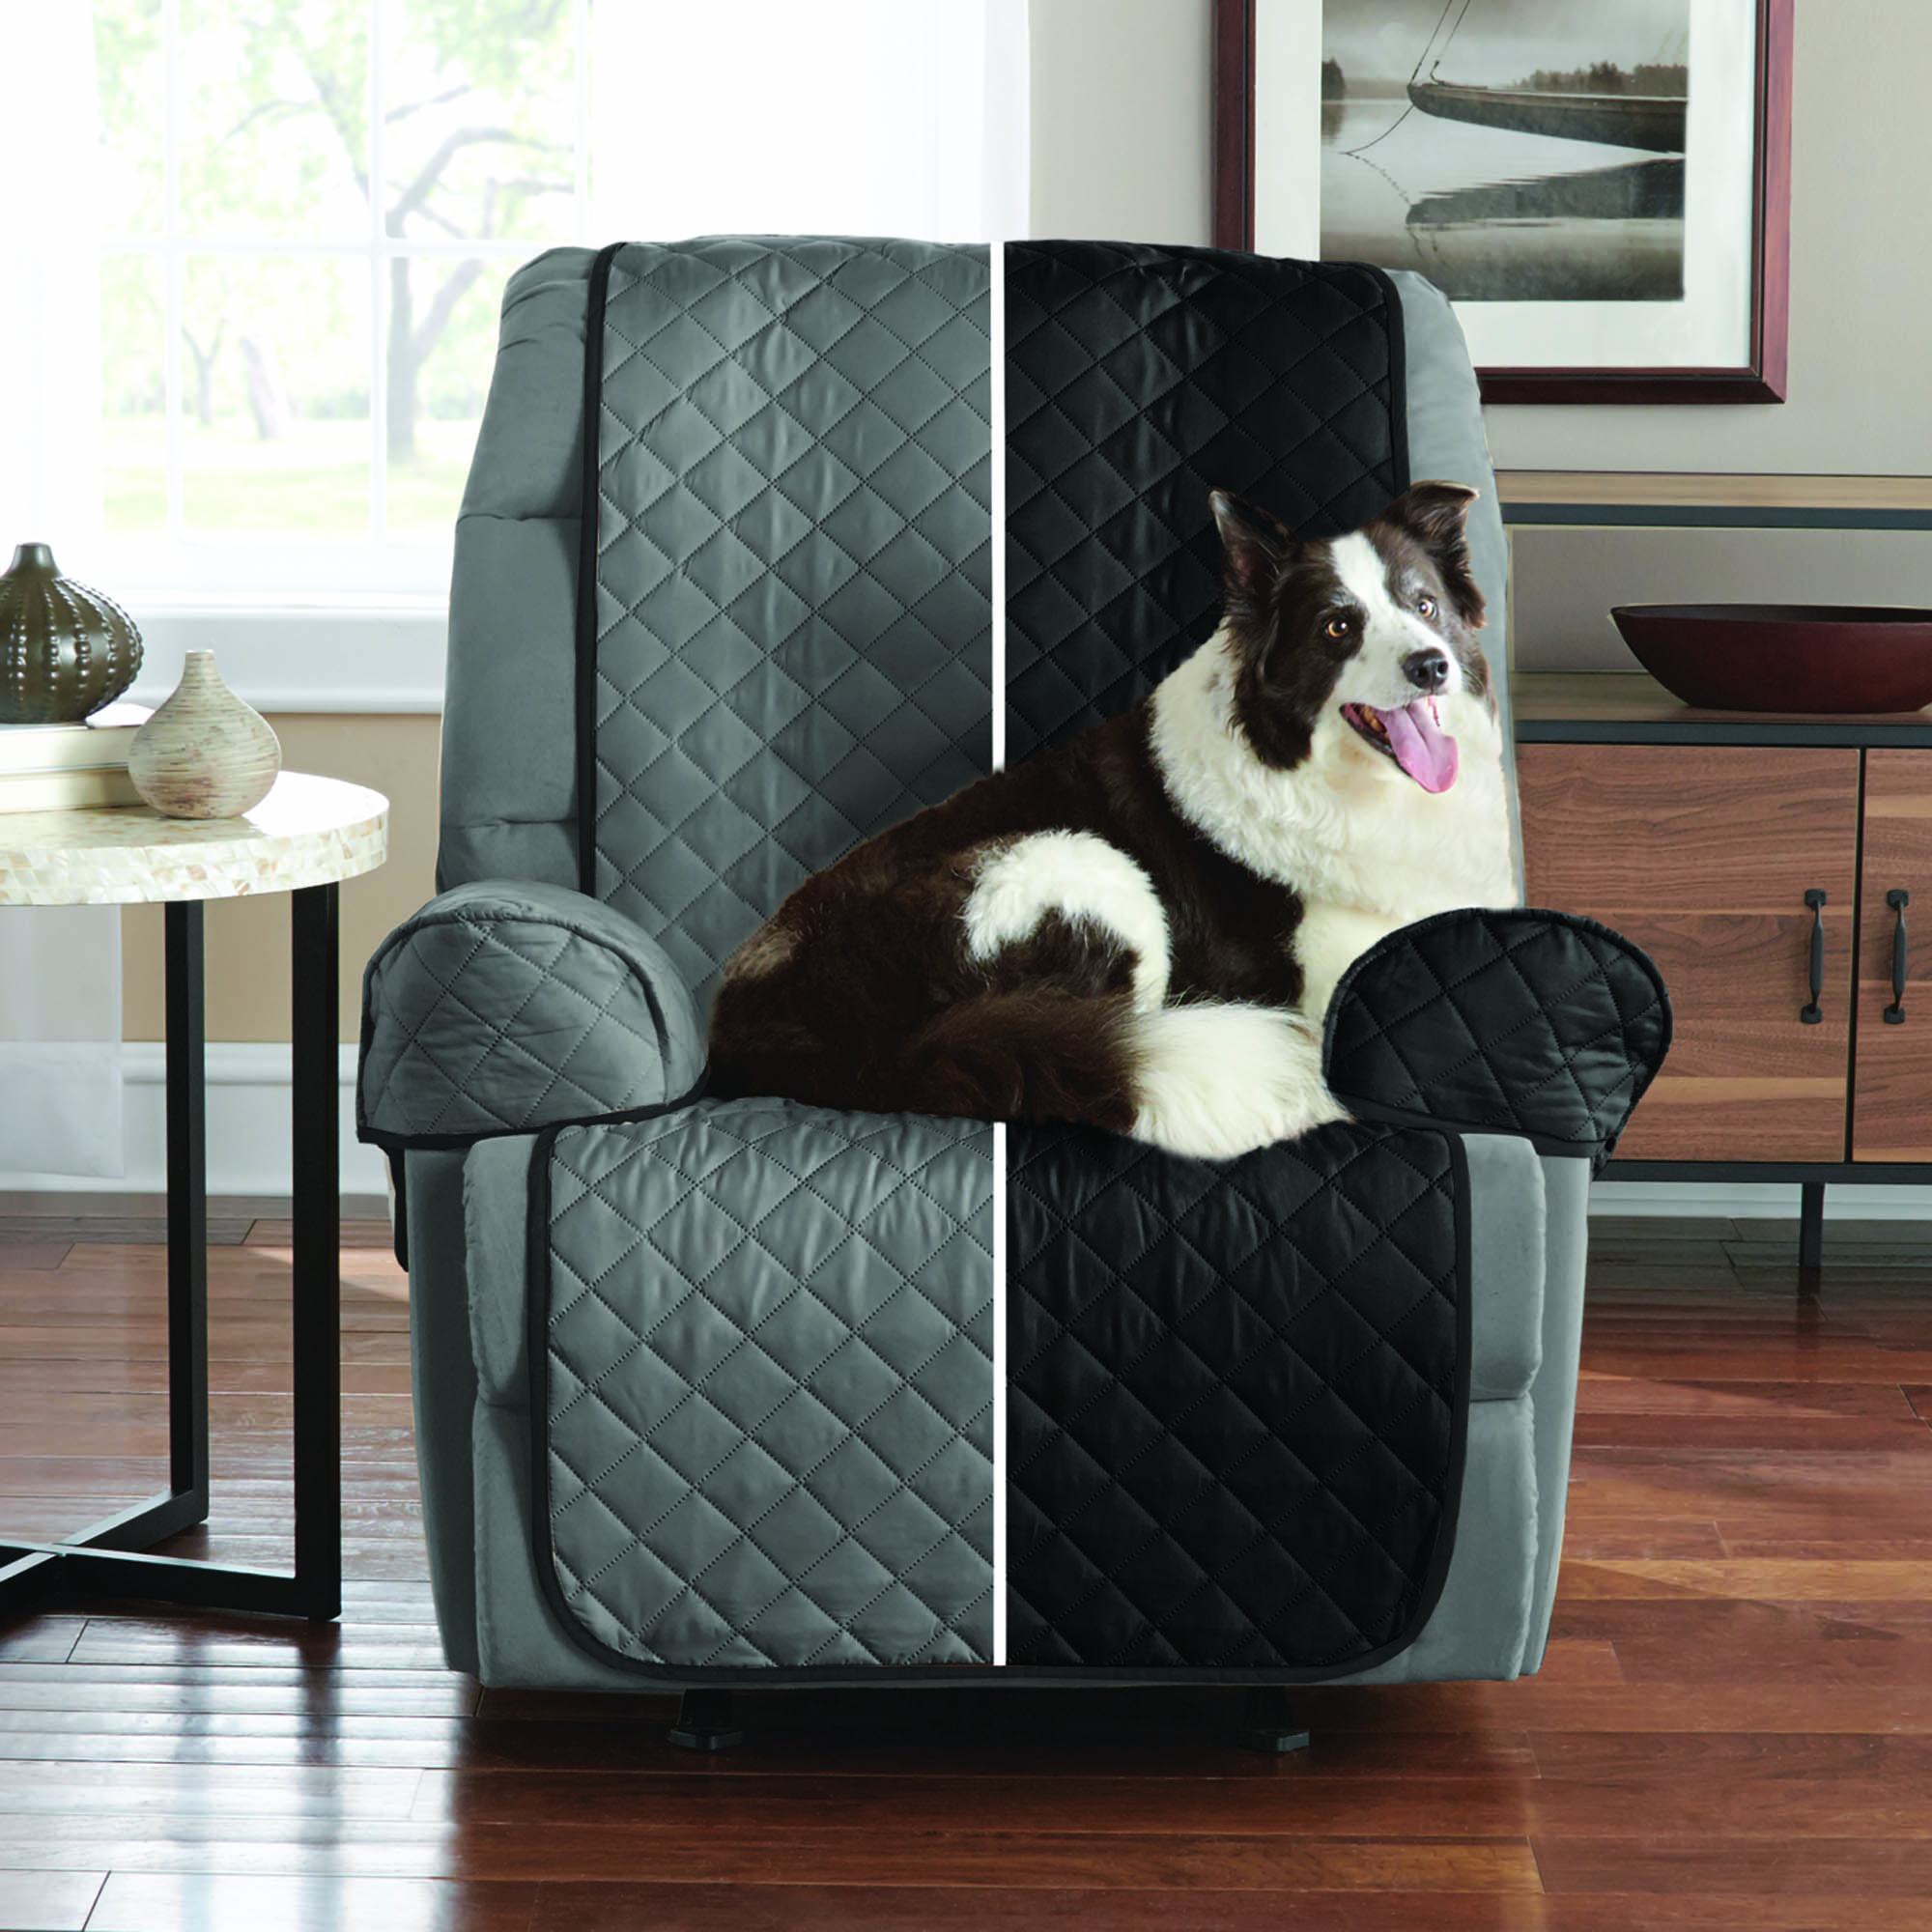 Mainstays Reversible Faux Suede To Microfiber 3 Piece Recliner Chair  Furniture Cover Protector, Black /